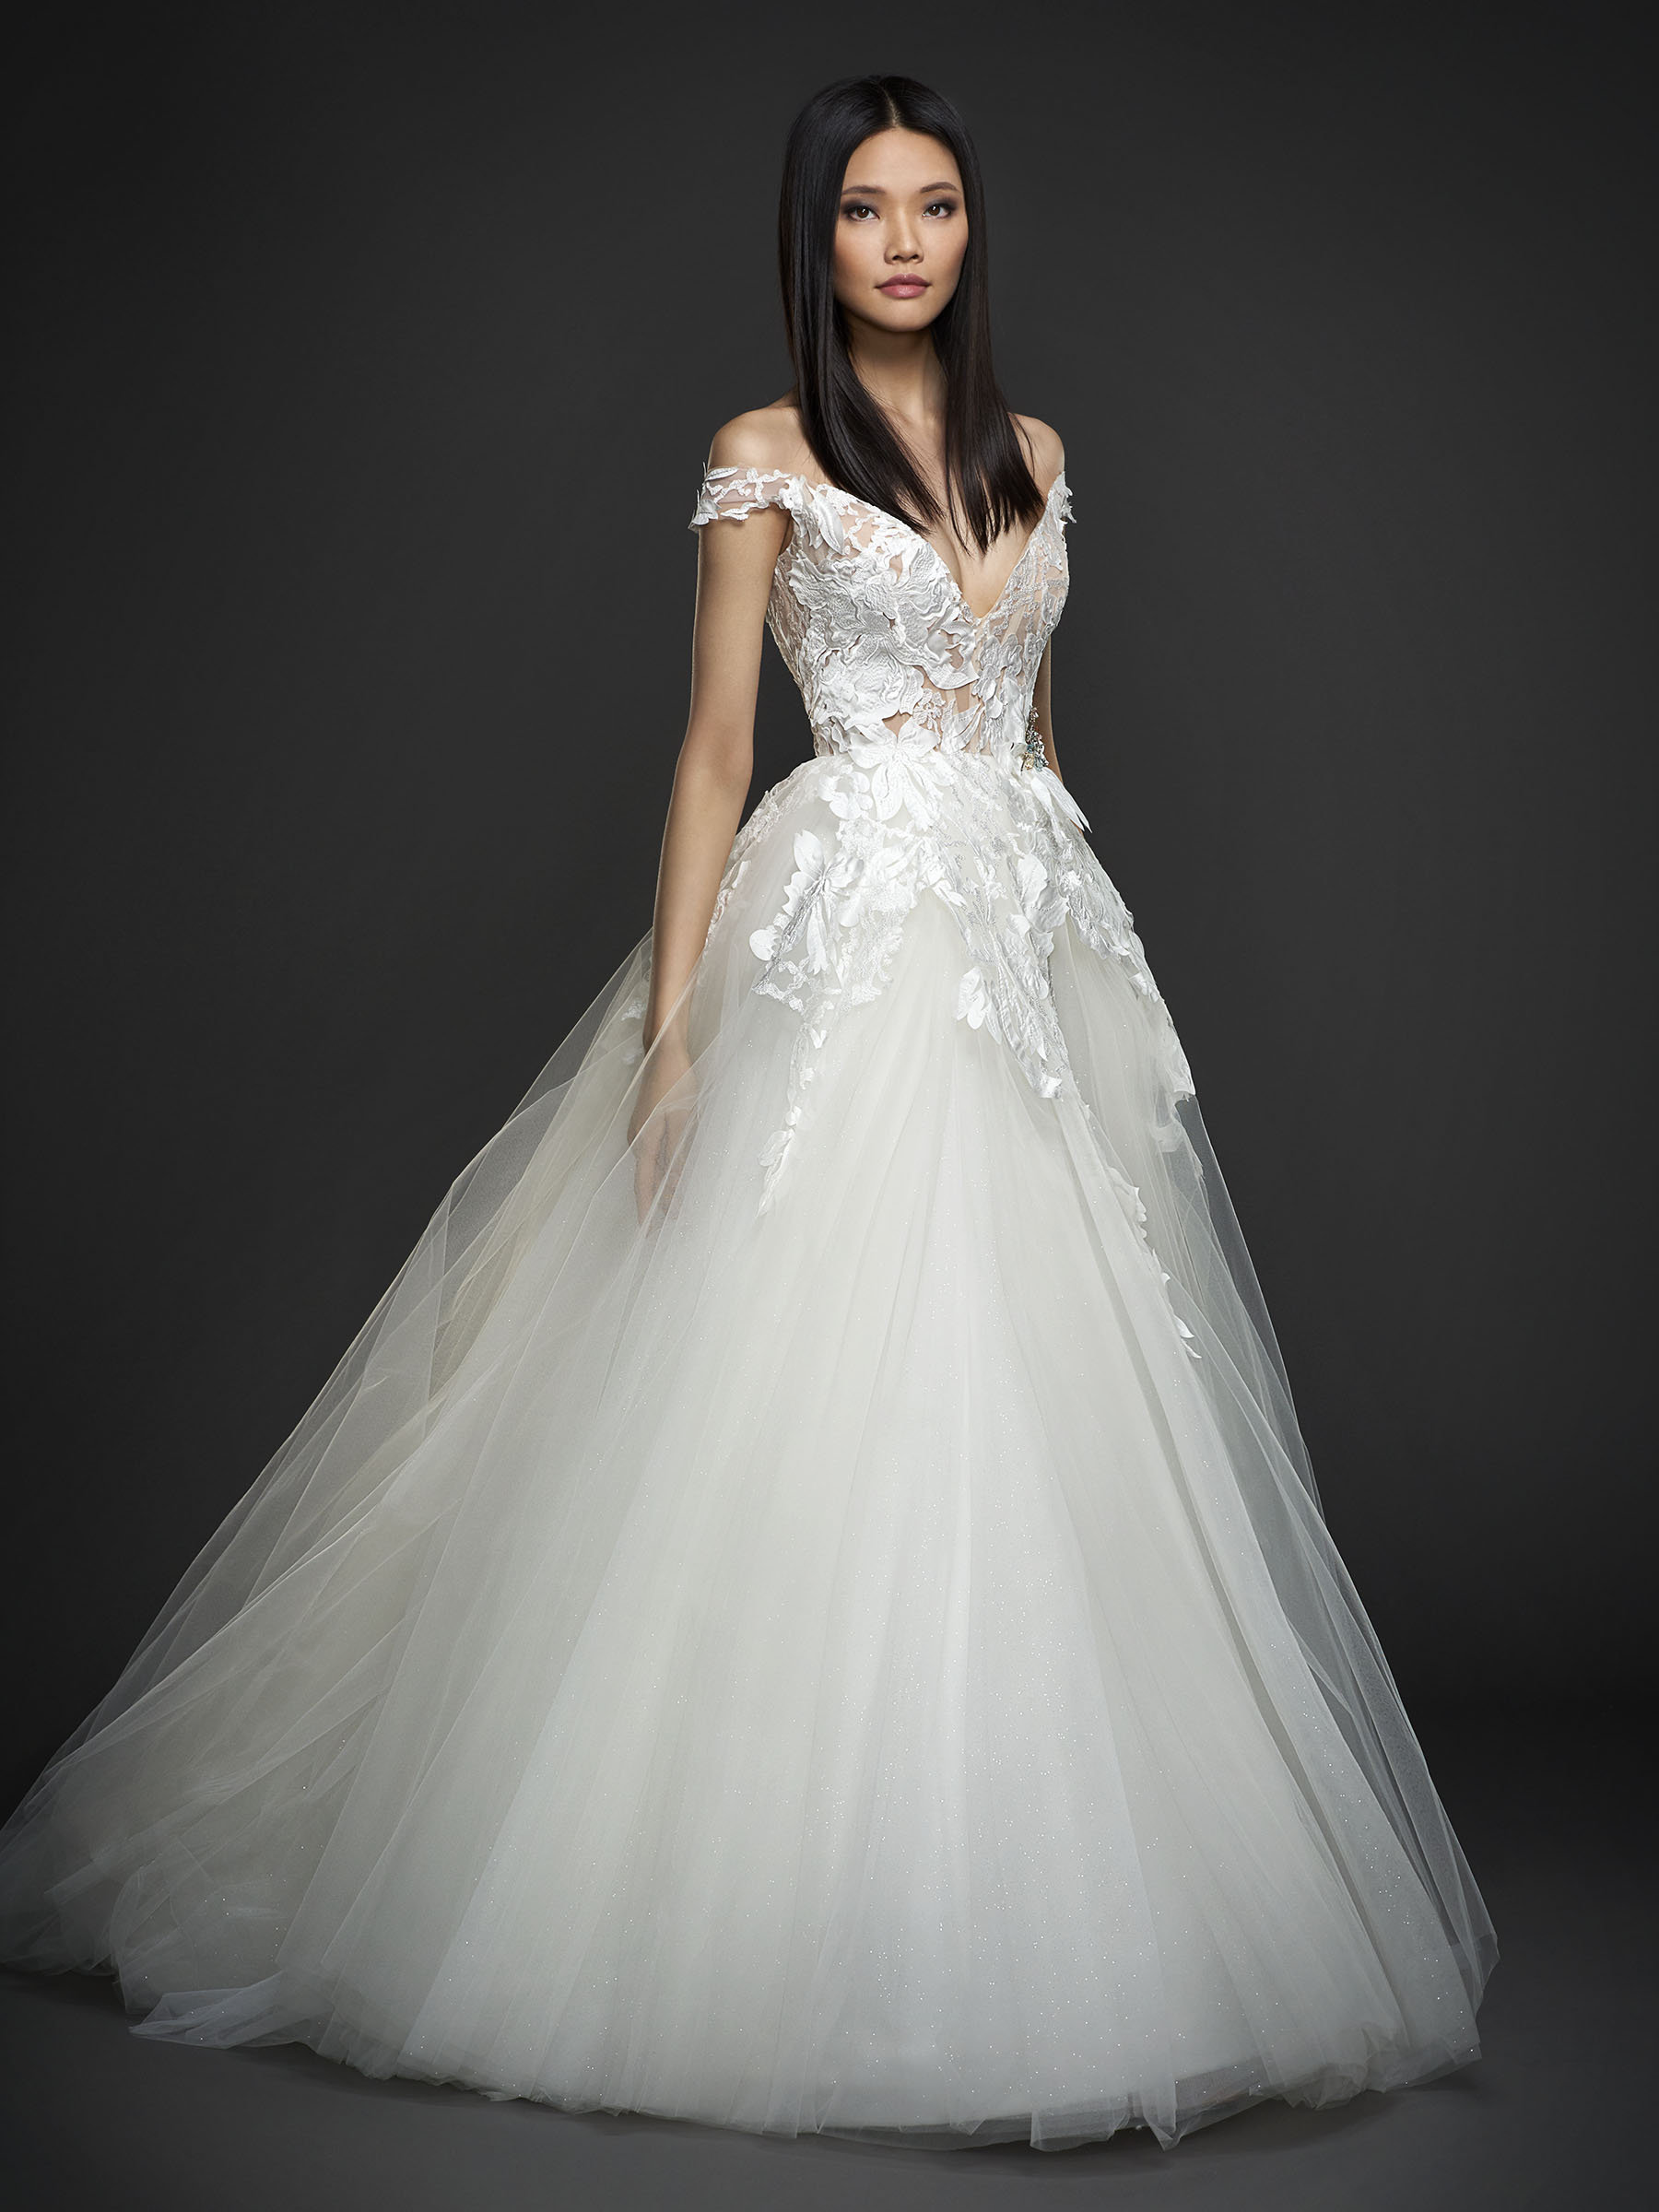 Bridal gowns and wedding dresses by jlm couture style 3764 style 3764 junglespirit Image collections